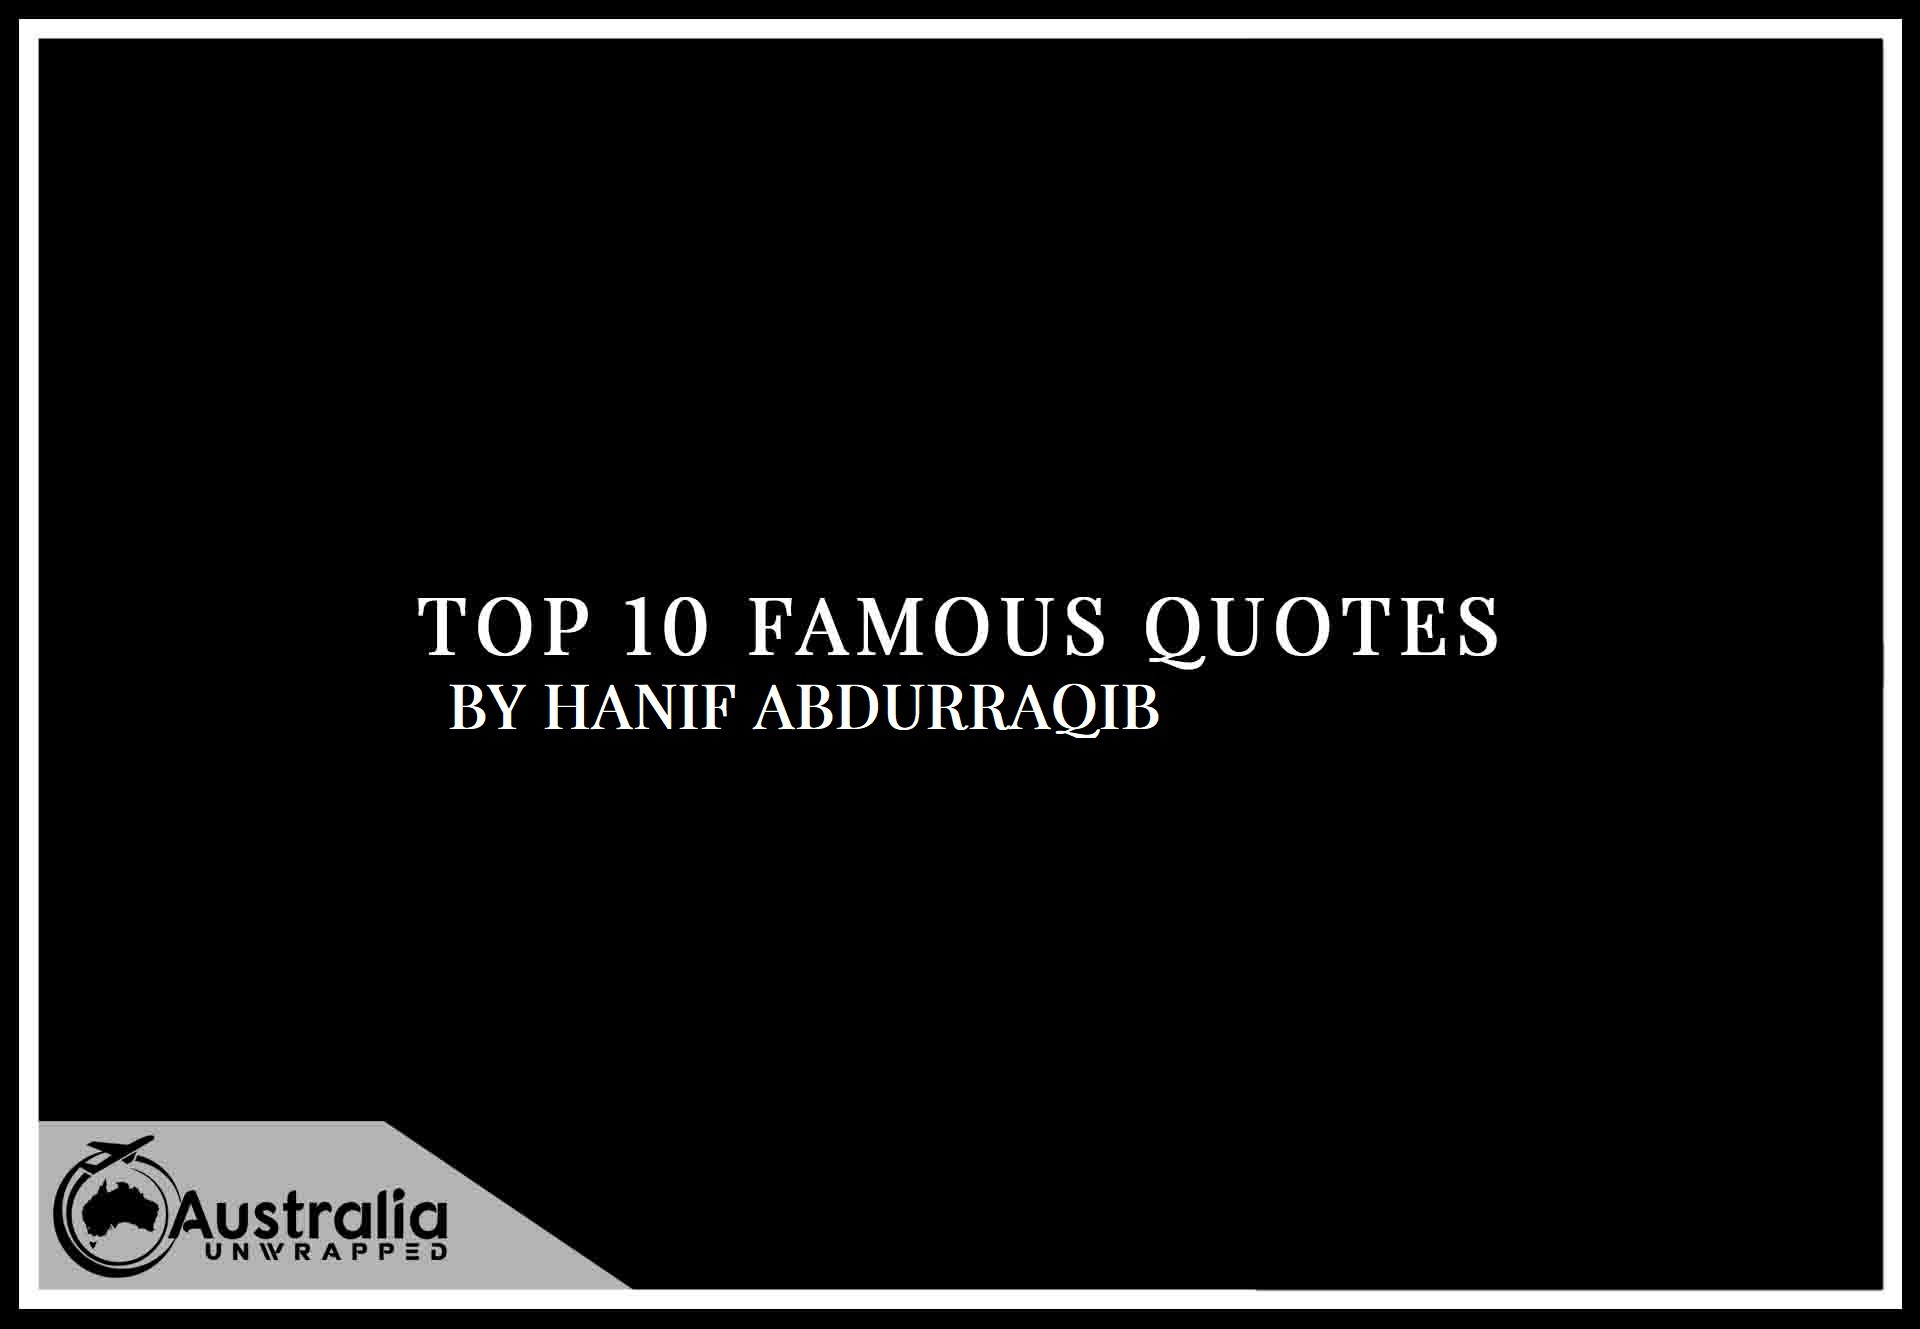 Top 10 Famous Quotes by Author Hanif Willis-Abdurraqib